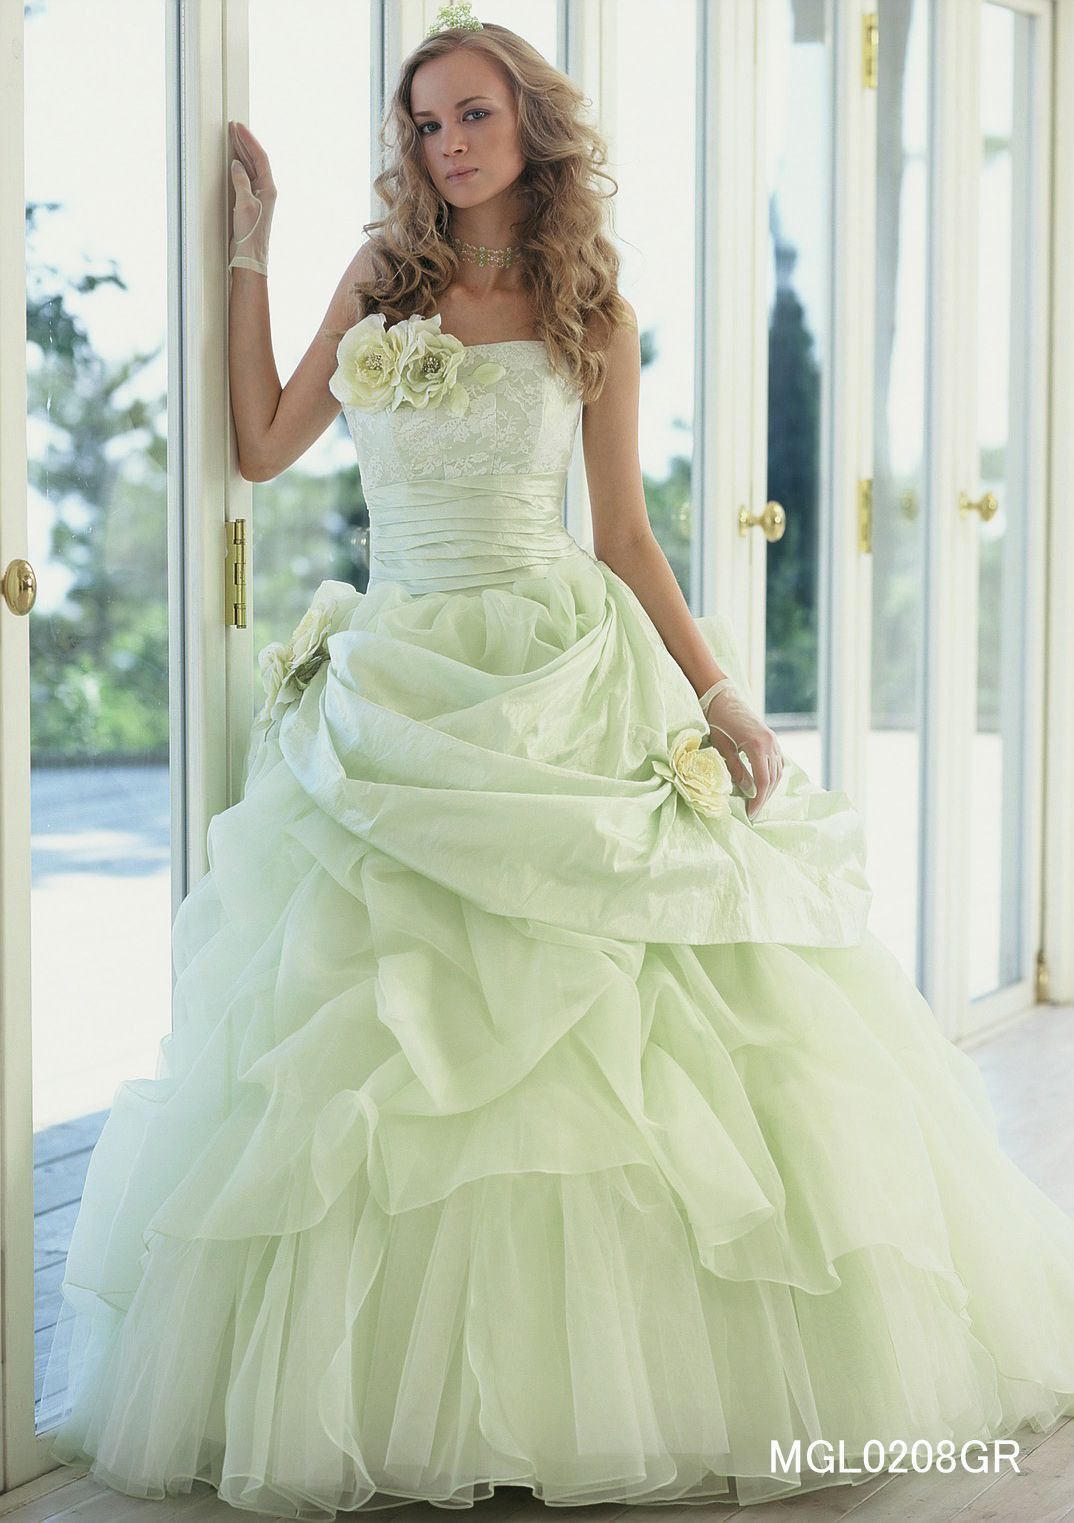 Watch - Wedding green gowns video